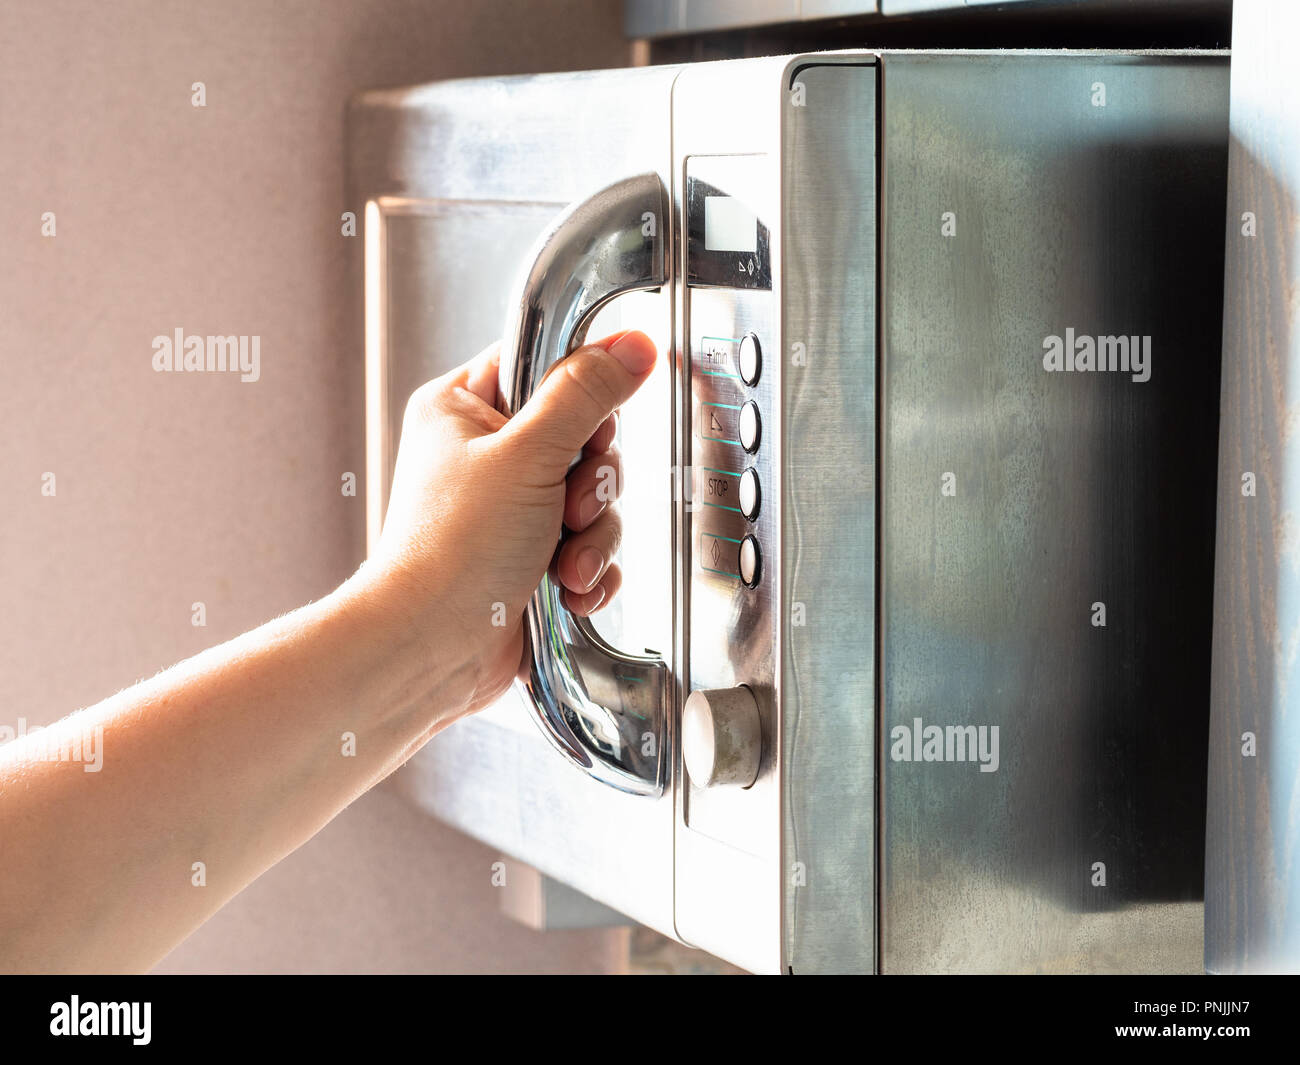 the illuminated by sun hand closes door of old steel microwave oven at home - Stock Image